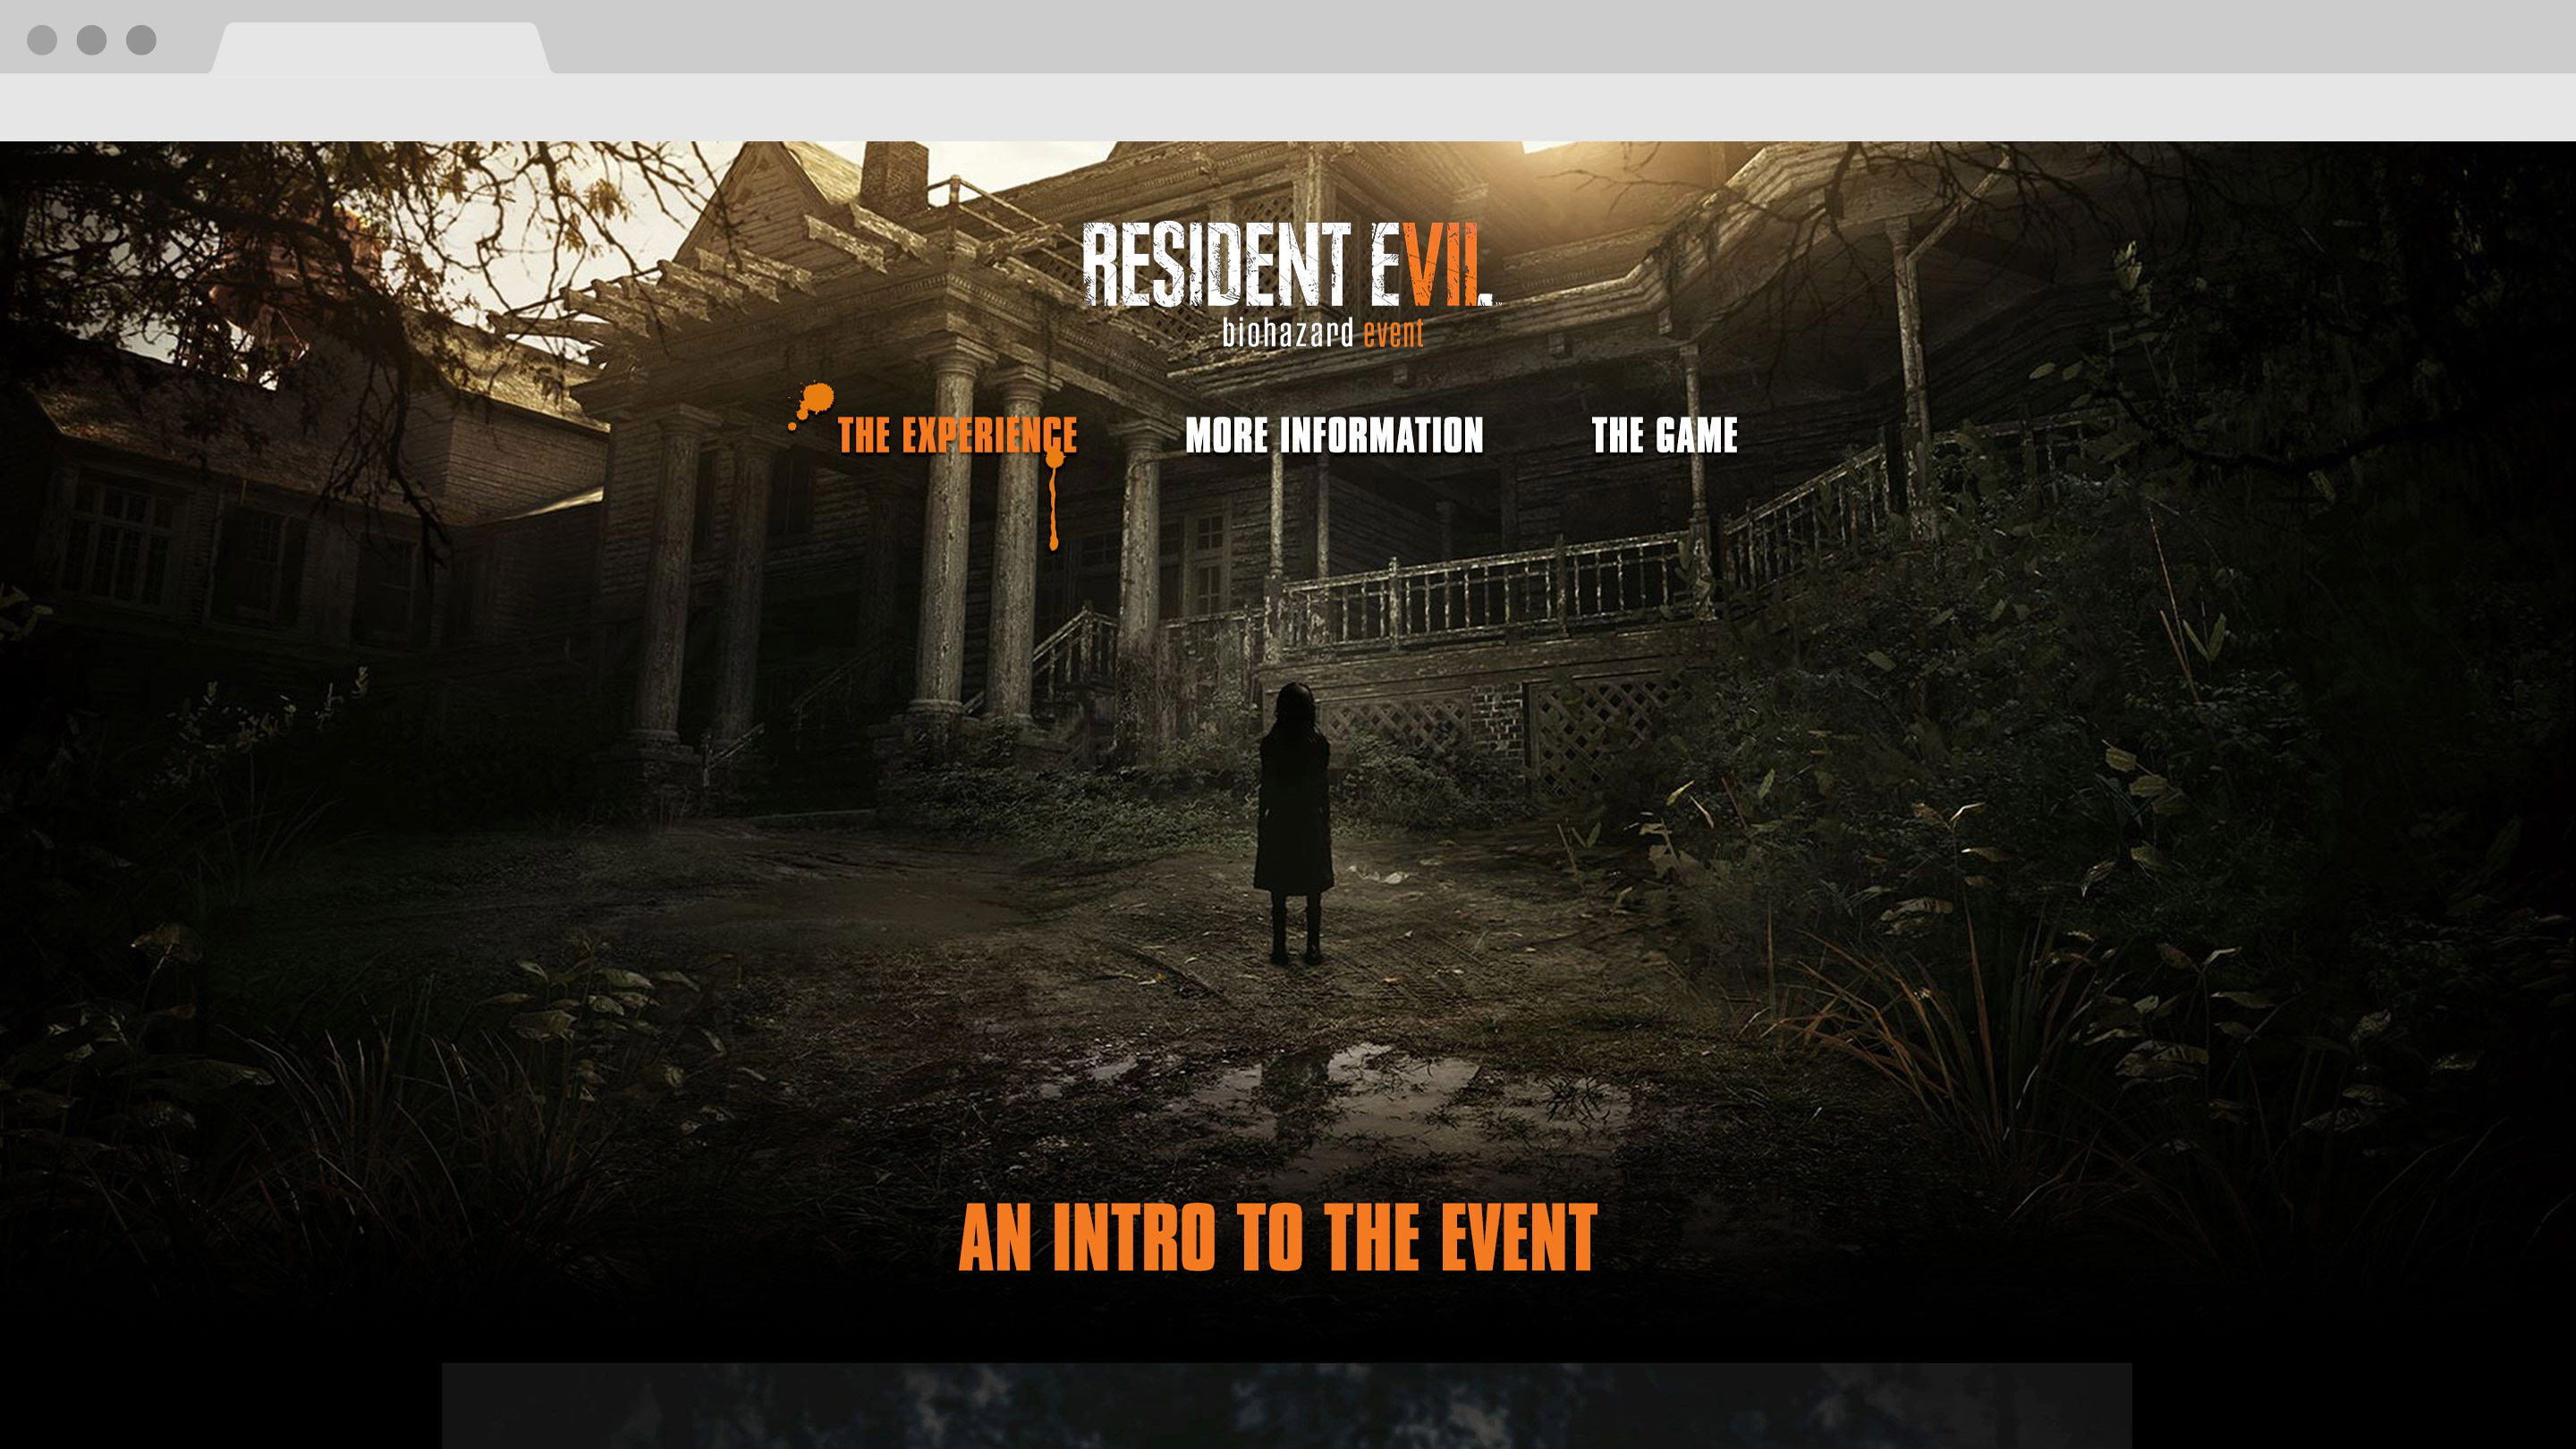 ResidentEvil_home